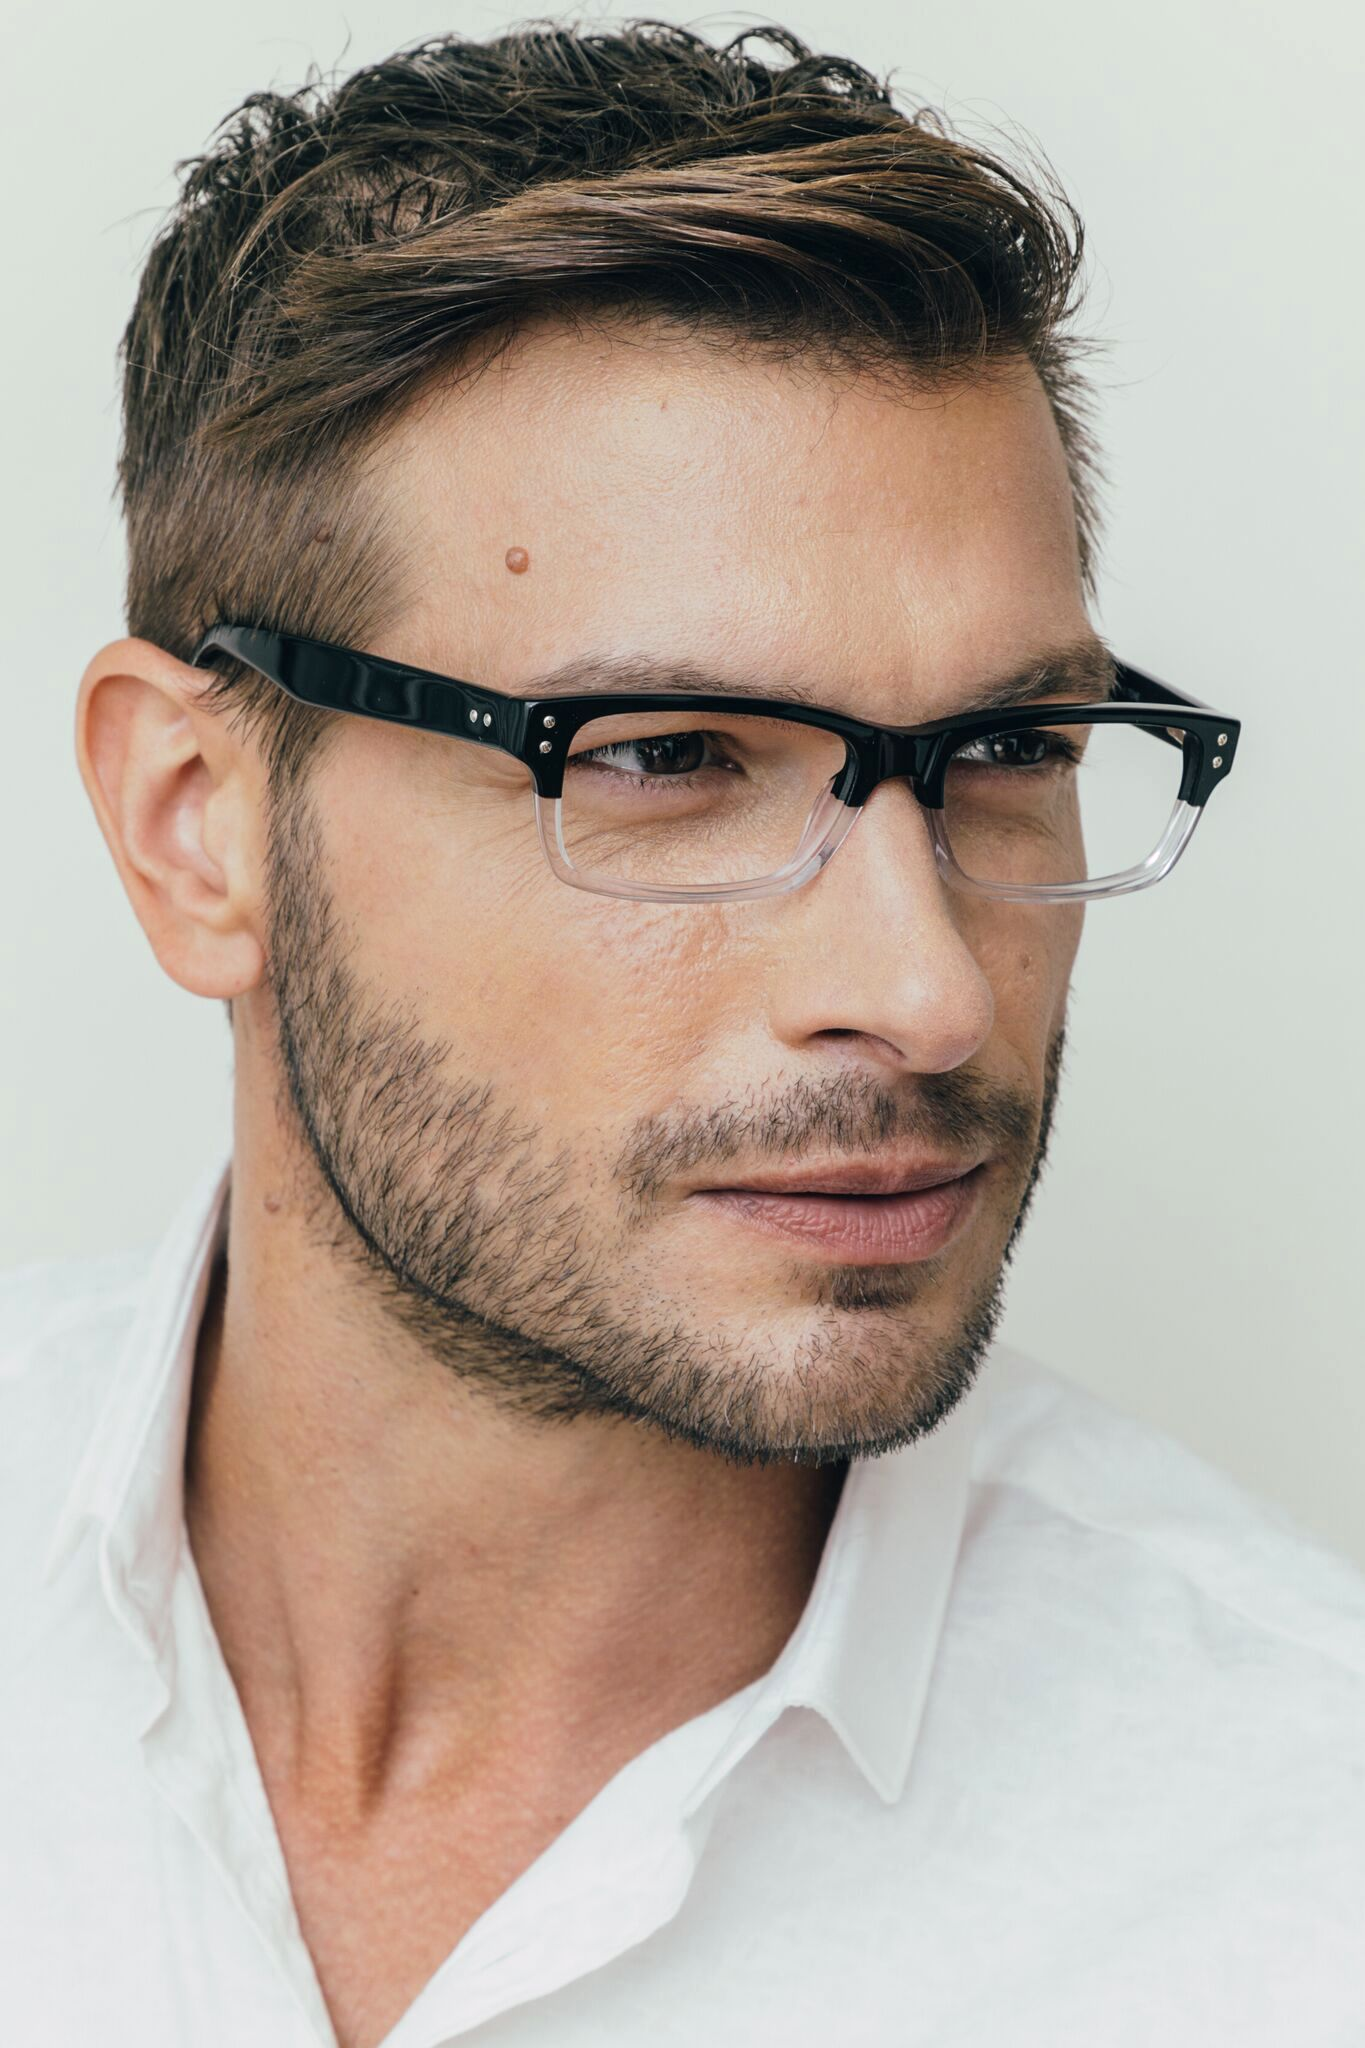 Brunette male wearing plastic ernest hemingway black/clear 4613 frame